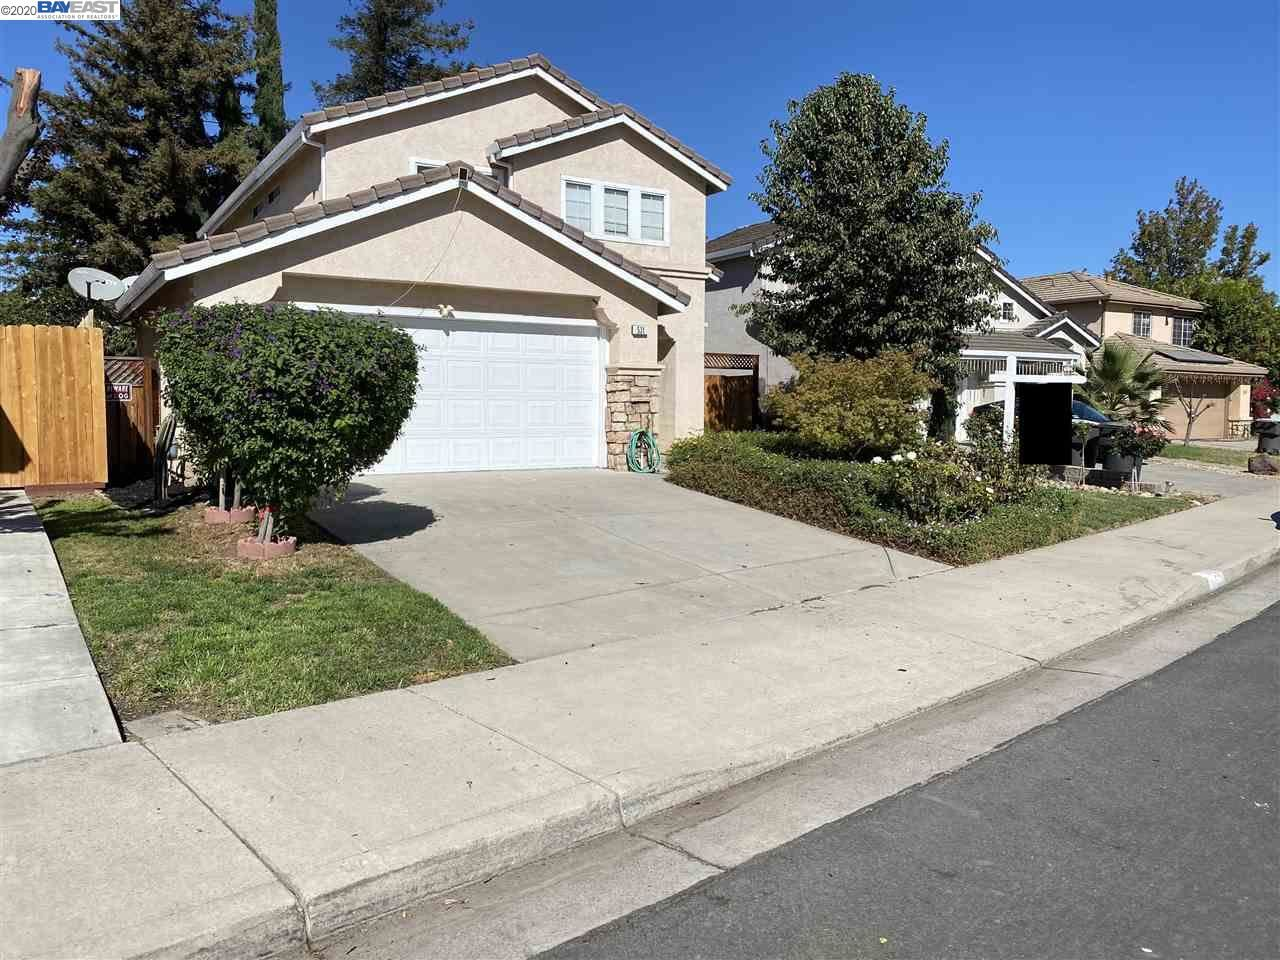 Photo for 531 Wagtail DR, TRACY, CA 95376-5448 (MLS # 40925847)